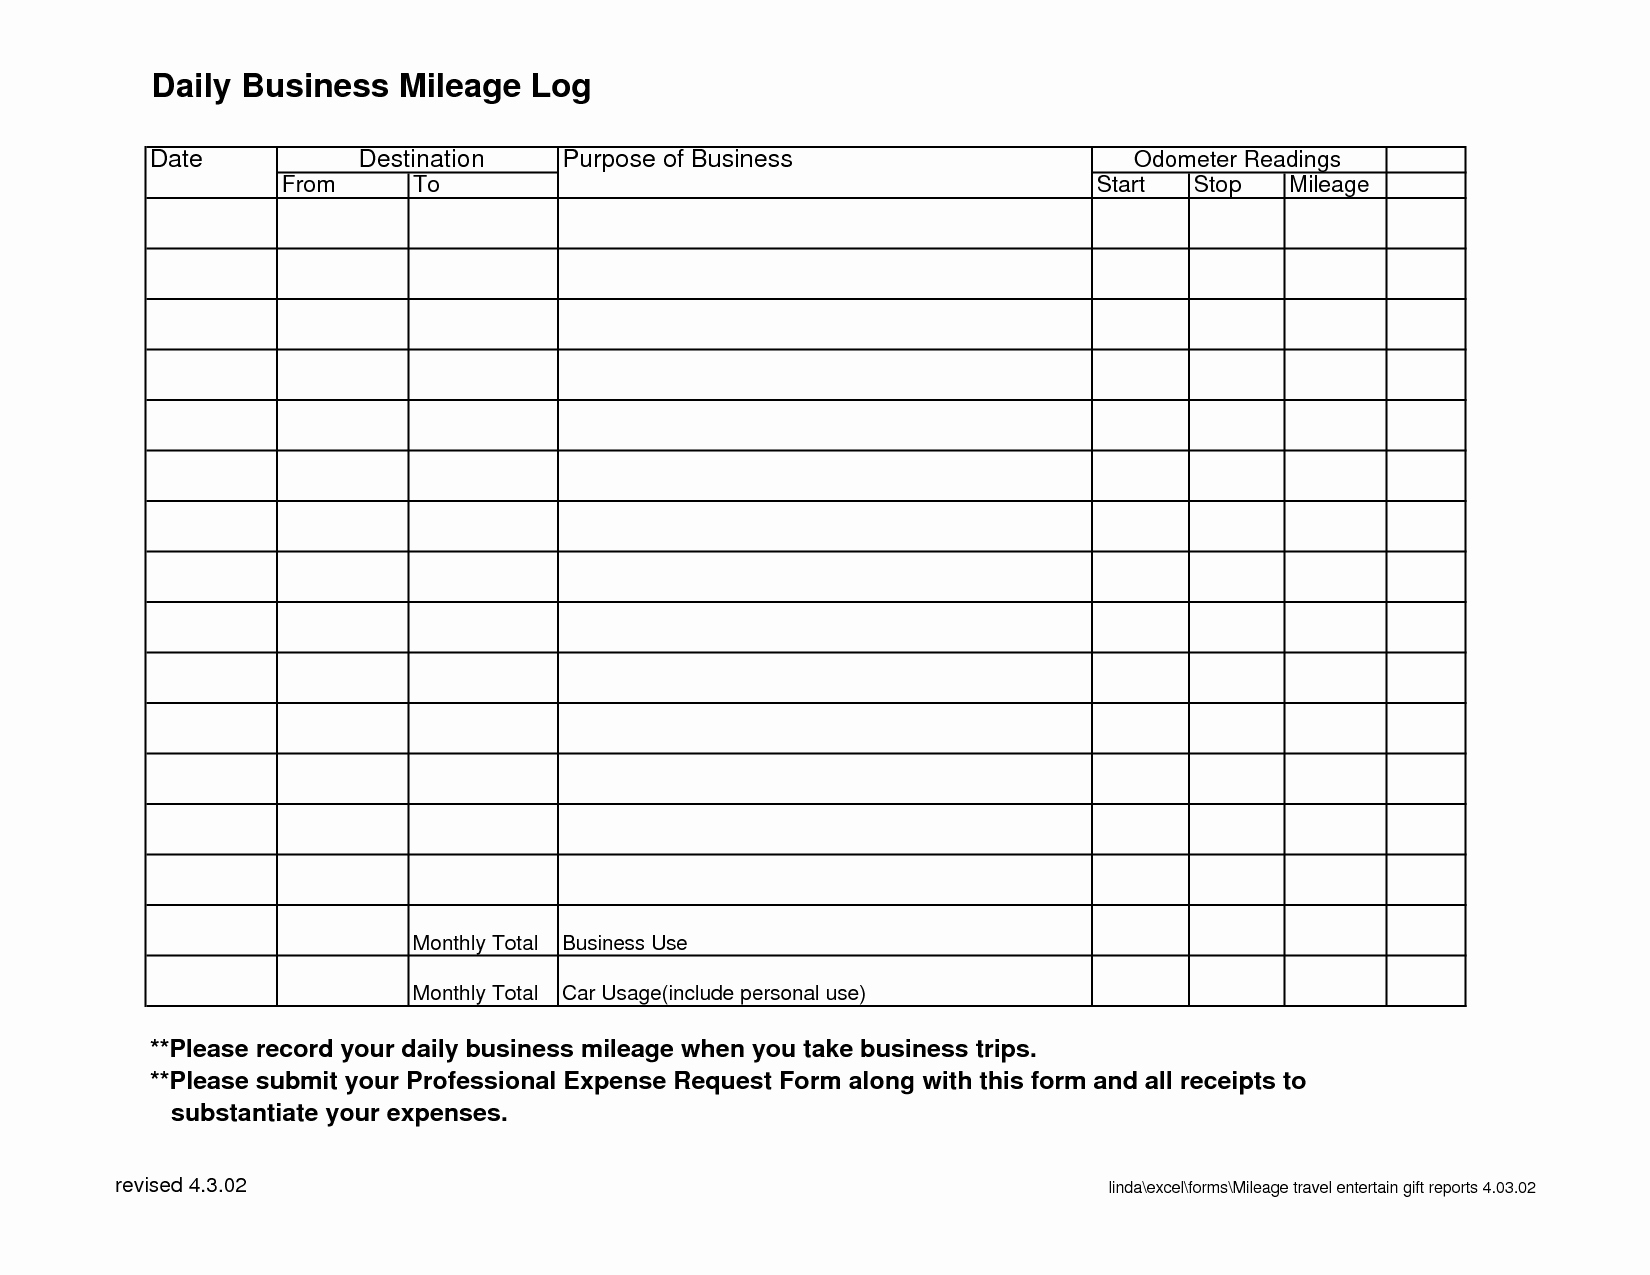 Vehicle Mileage Log Template | Pictimilitude - Free Printable Mileage Log